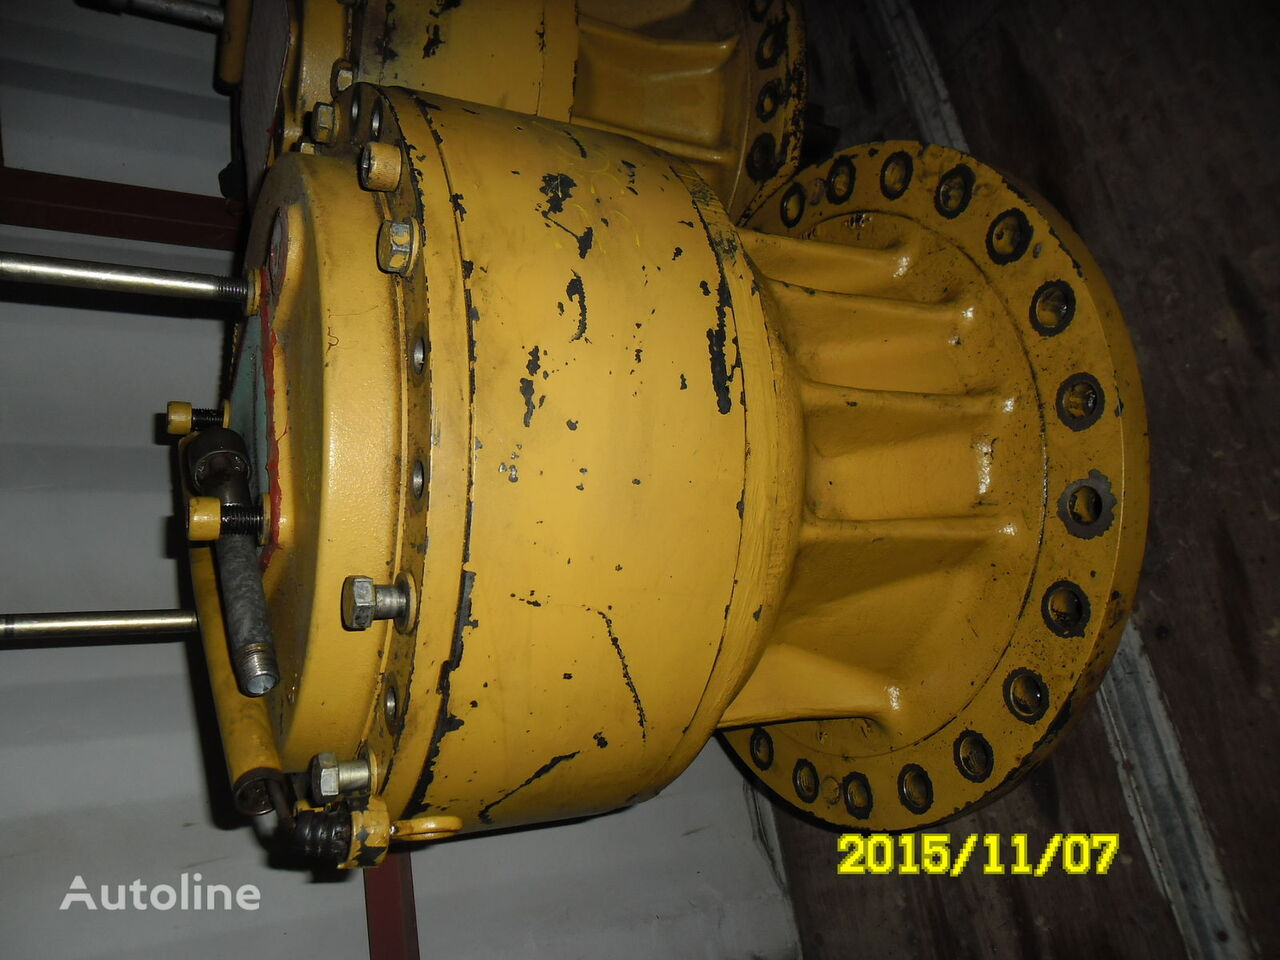 CATERPILLAR Swing Drive swing motor for CATERPILLAR  330C excavator